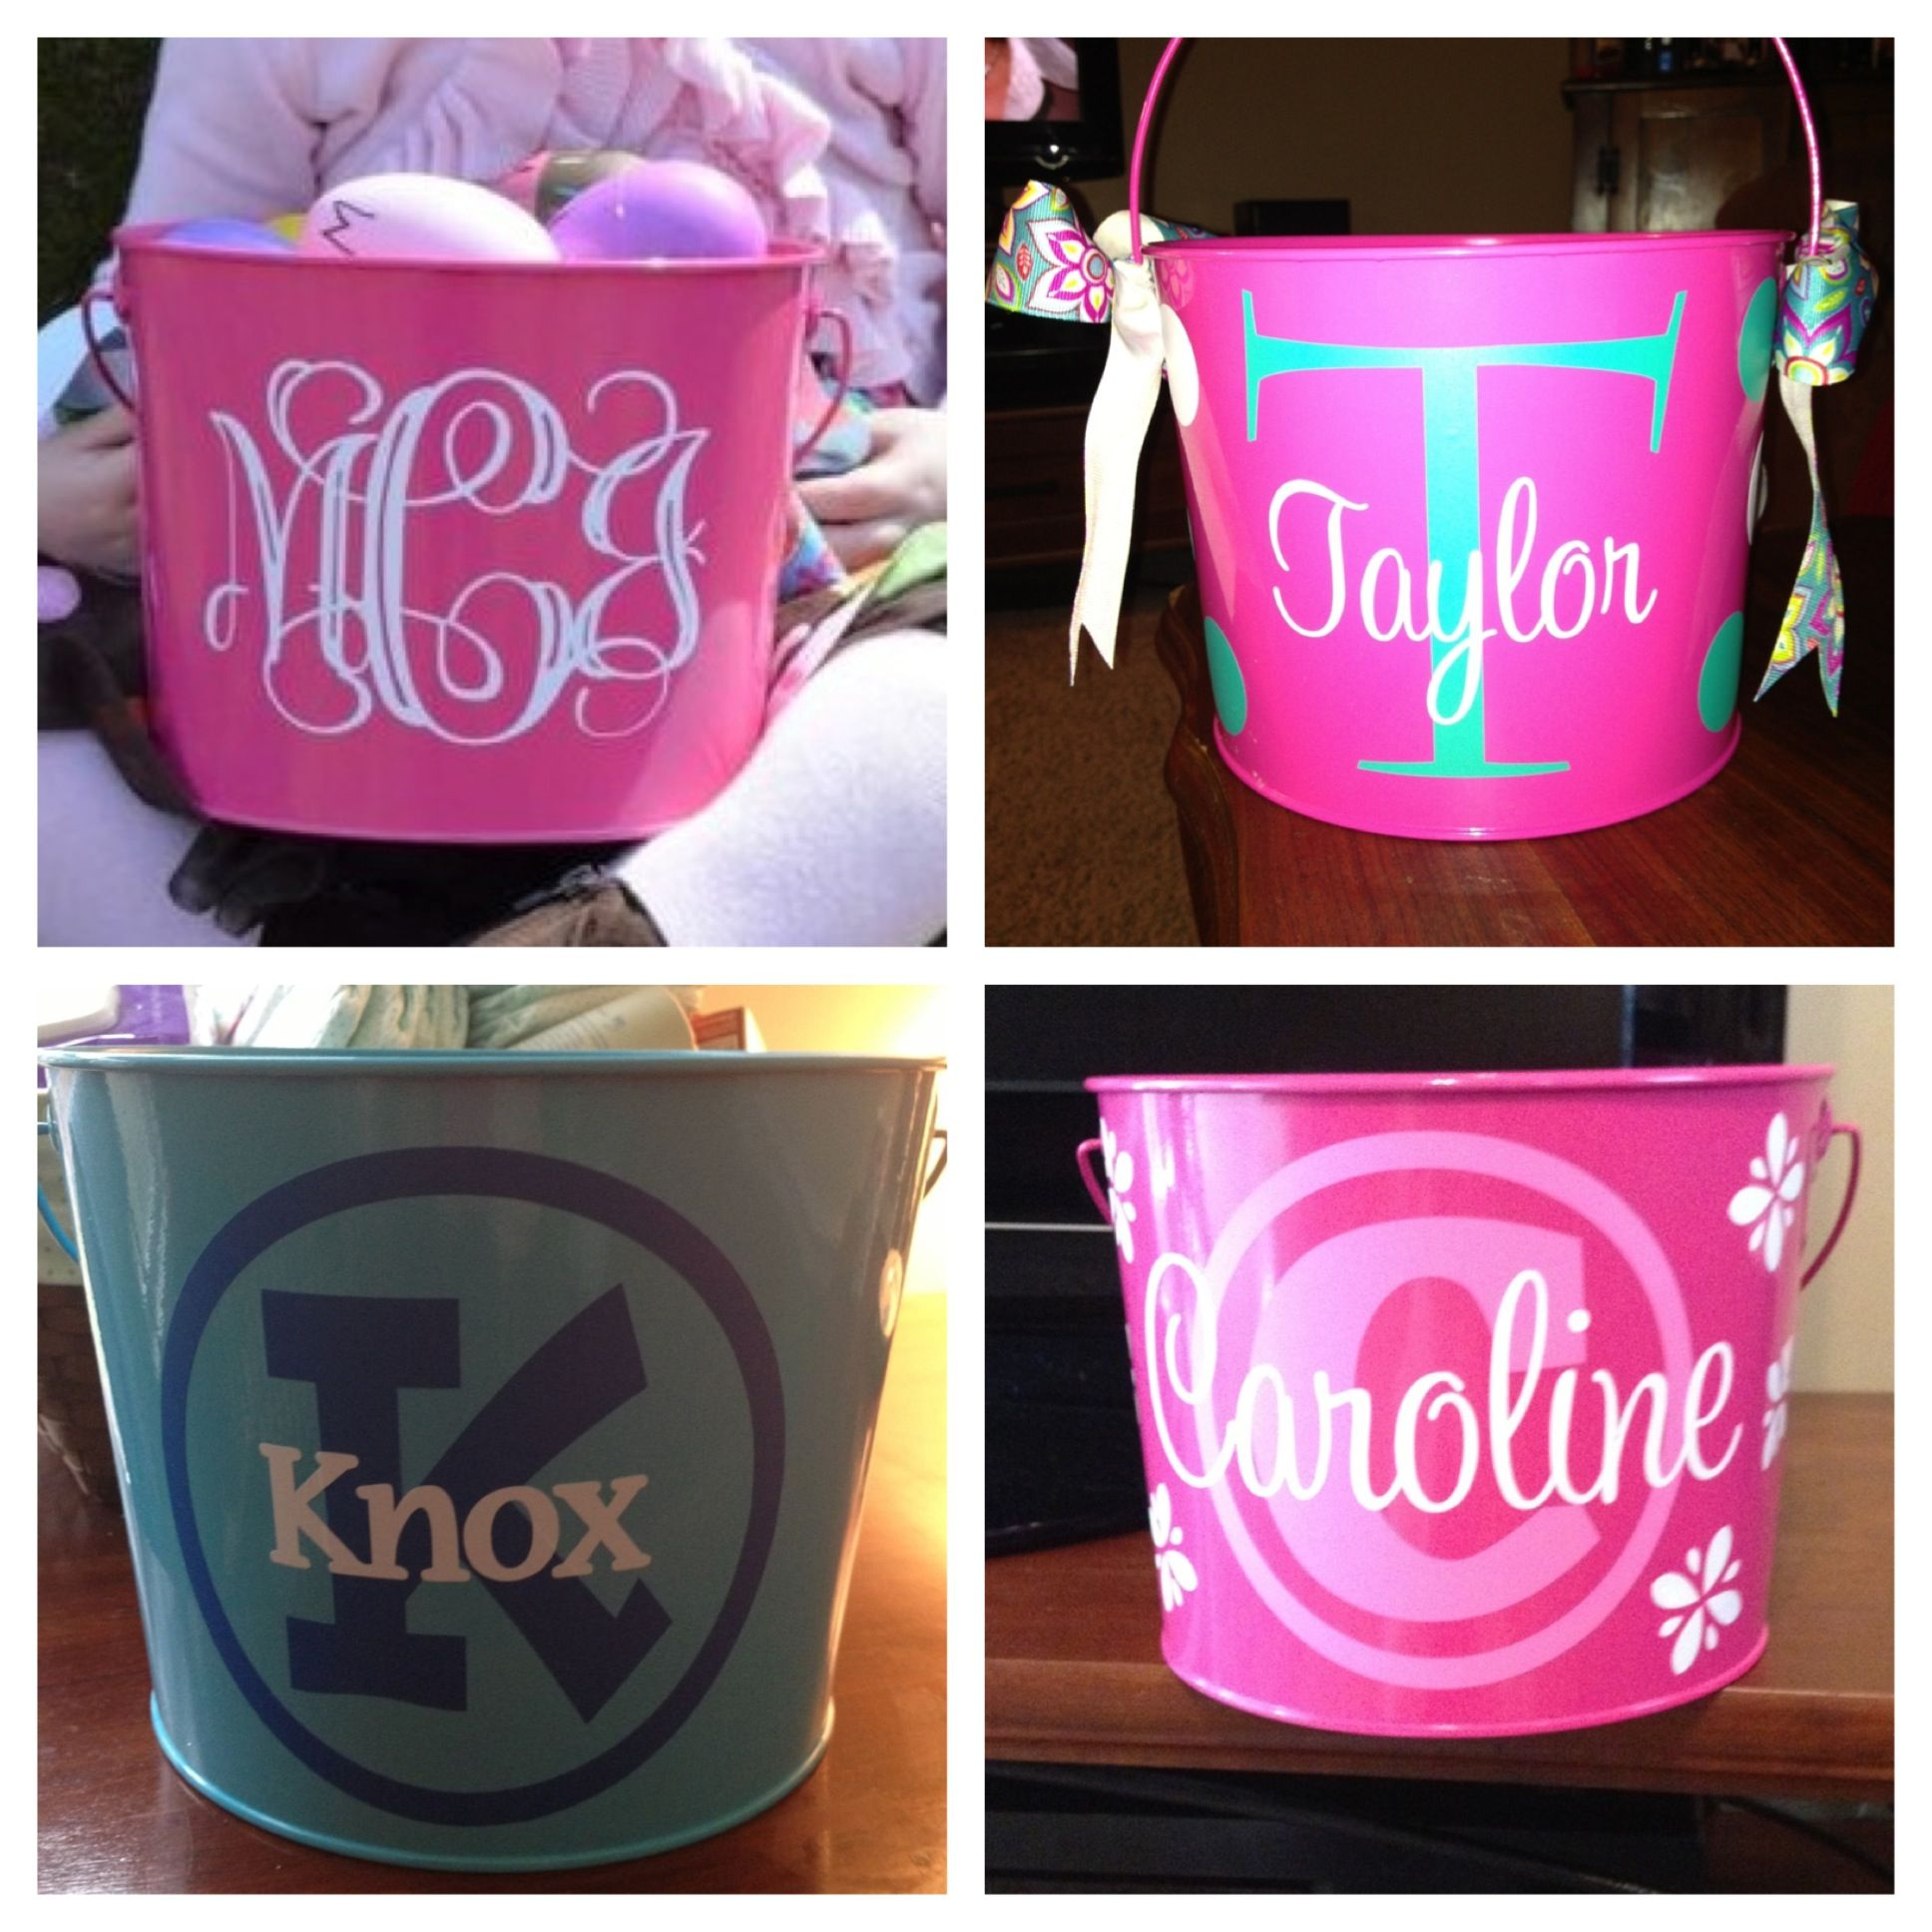 Easter Pails Vinyl From Expressions Vinyl And Cut With A - Vinyl decals at hobby lobby